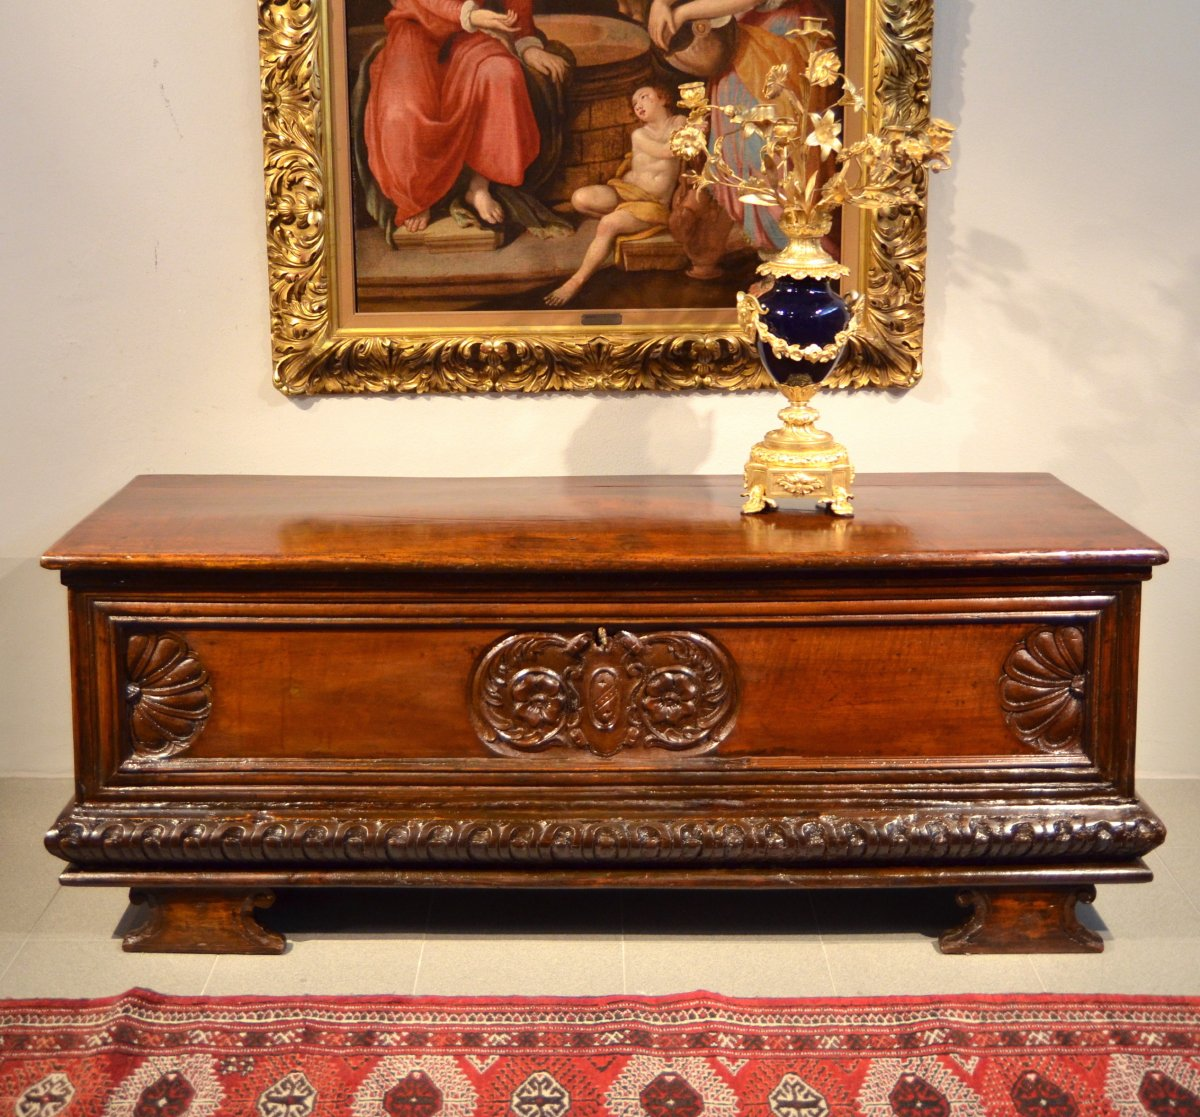 Italian Chest In Carved Walnut Wood, Lombardy (bergamum) Seventeenth Century